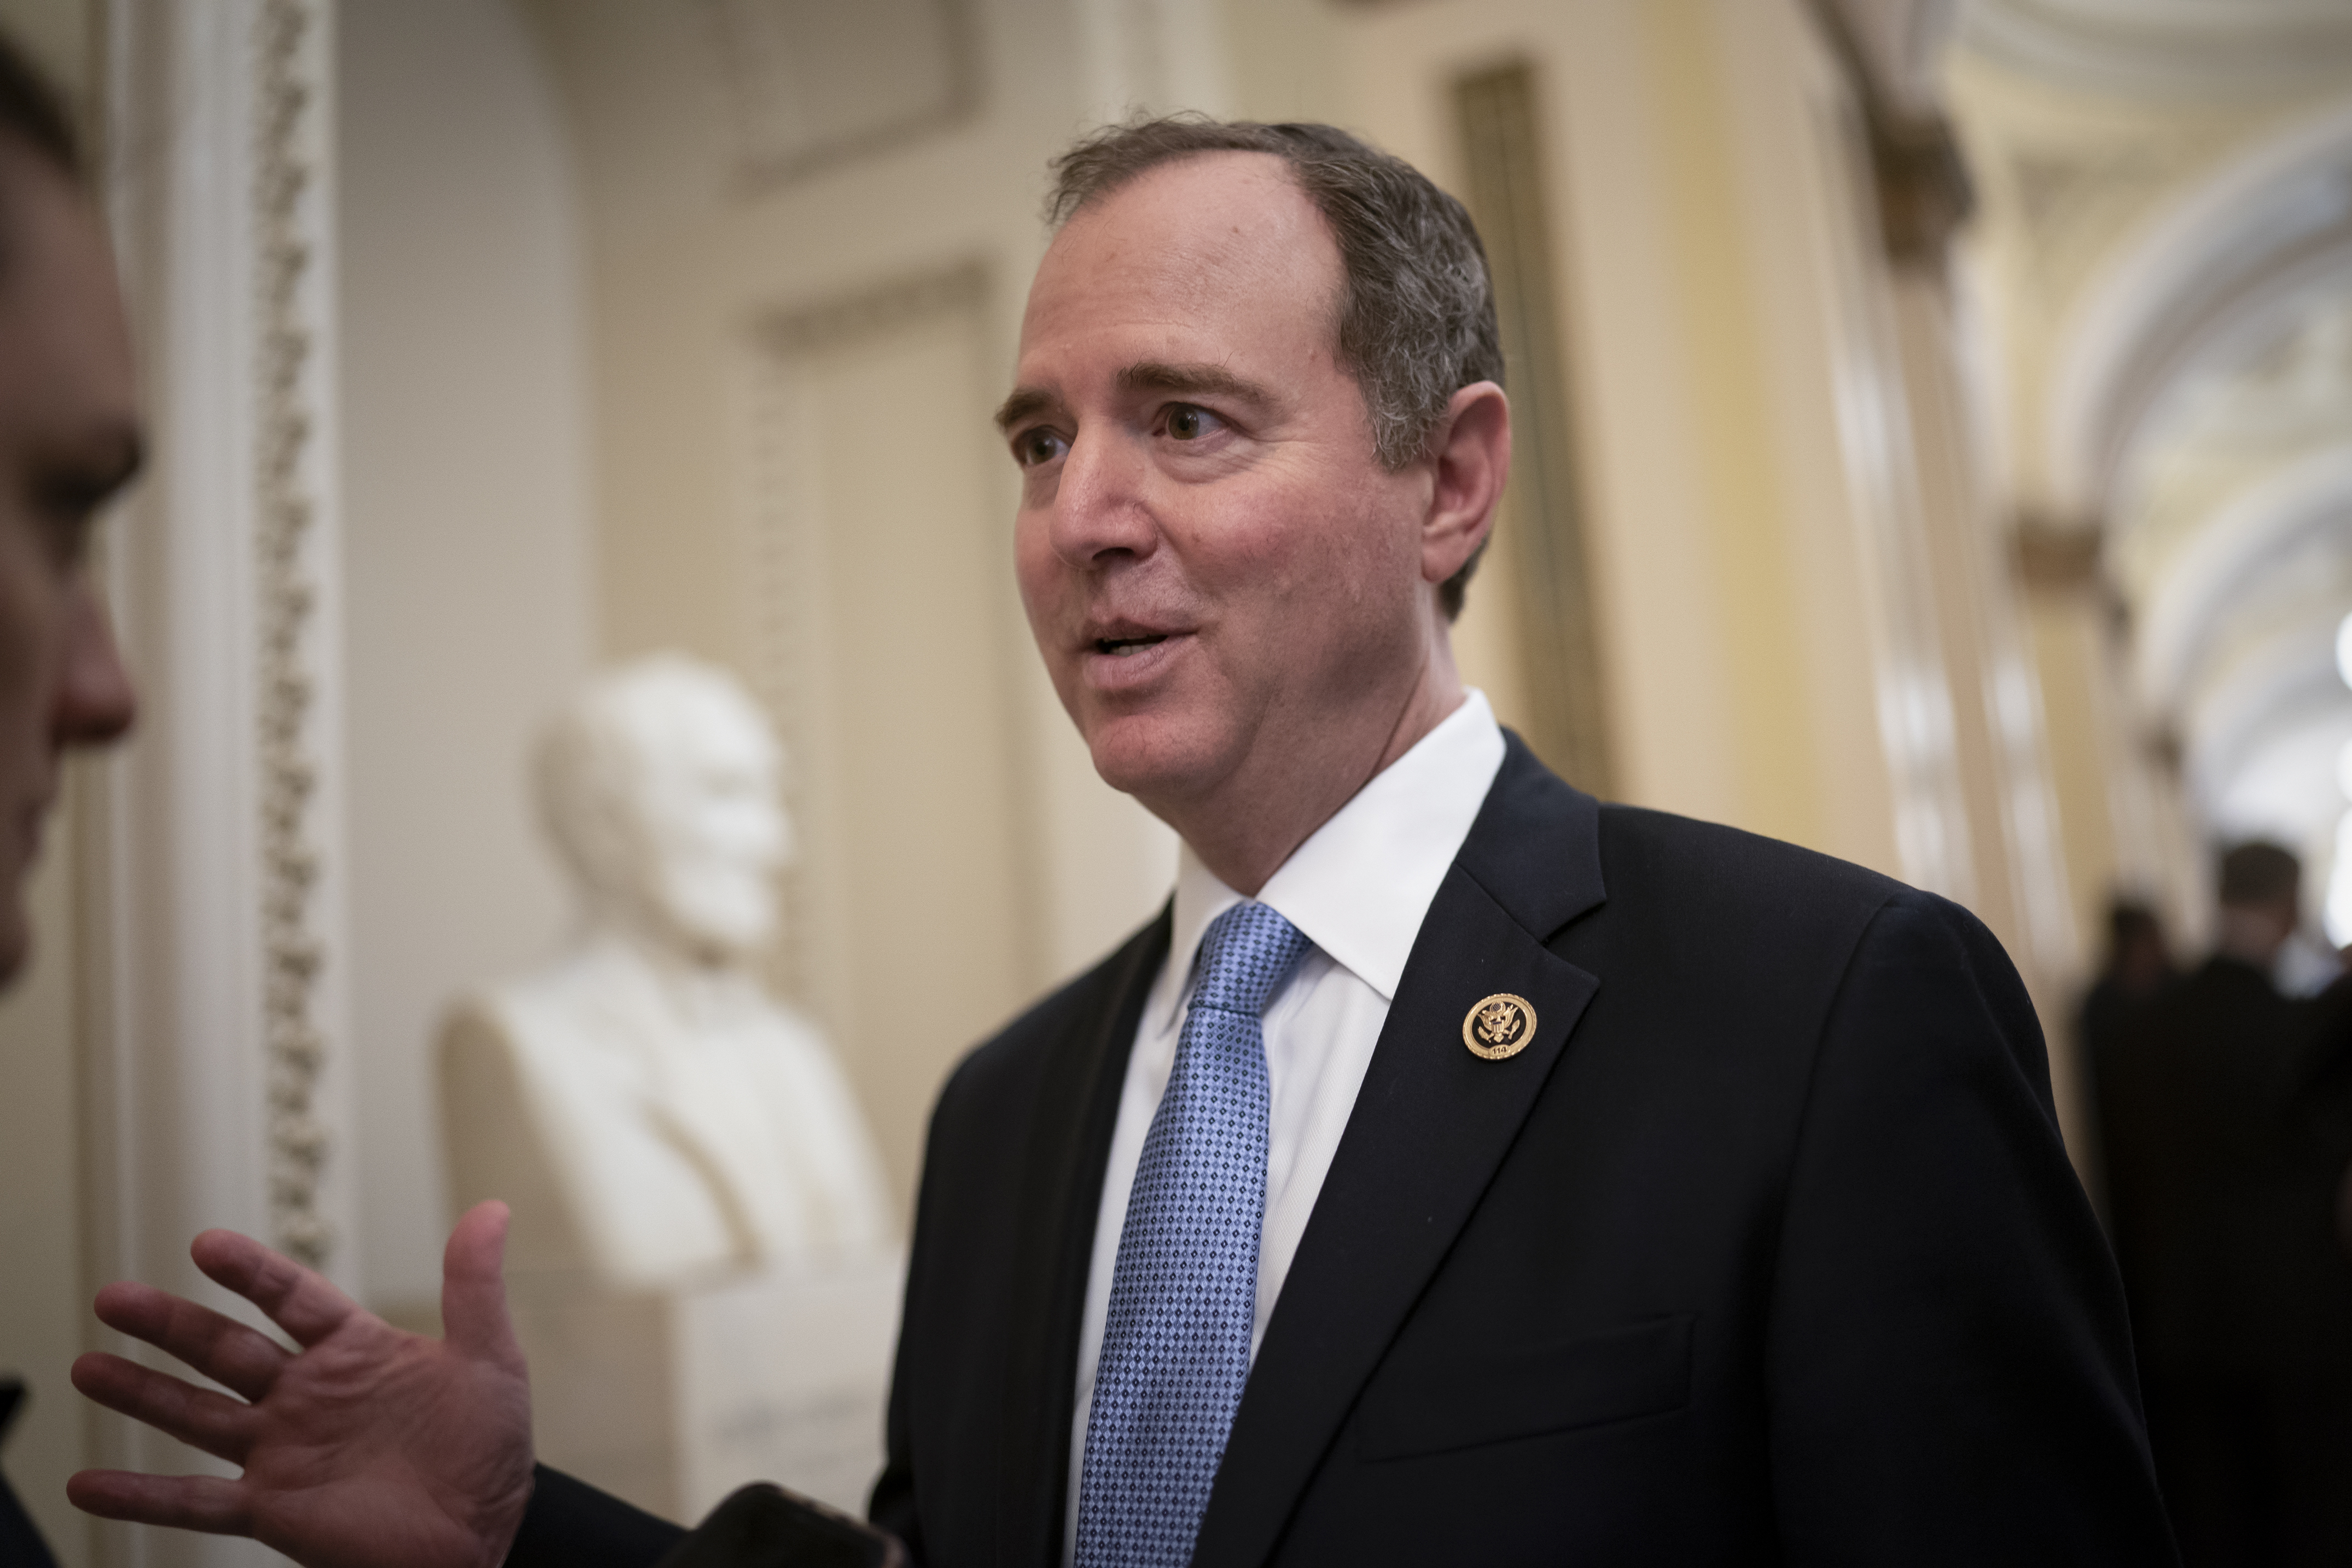 In this Tuesday, March 3, 2020, file photo, House Intelligence Committee Chairman Adam Schiff, D-Calif., talks to reporters as lawmakers work to extend government surveillance powers that are expiring soon, on Capitol Hill in Washington. House Speaker Nancy Pelosi and other top Democrats called for an investigation on Thursday, June 10, 2021, after The New York Times reported that the Justice Department under President Donald Trump seized the communications data of members of the House Intelligence Committee, including those of Schiff.